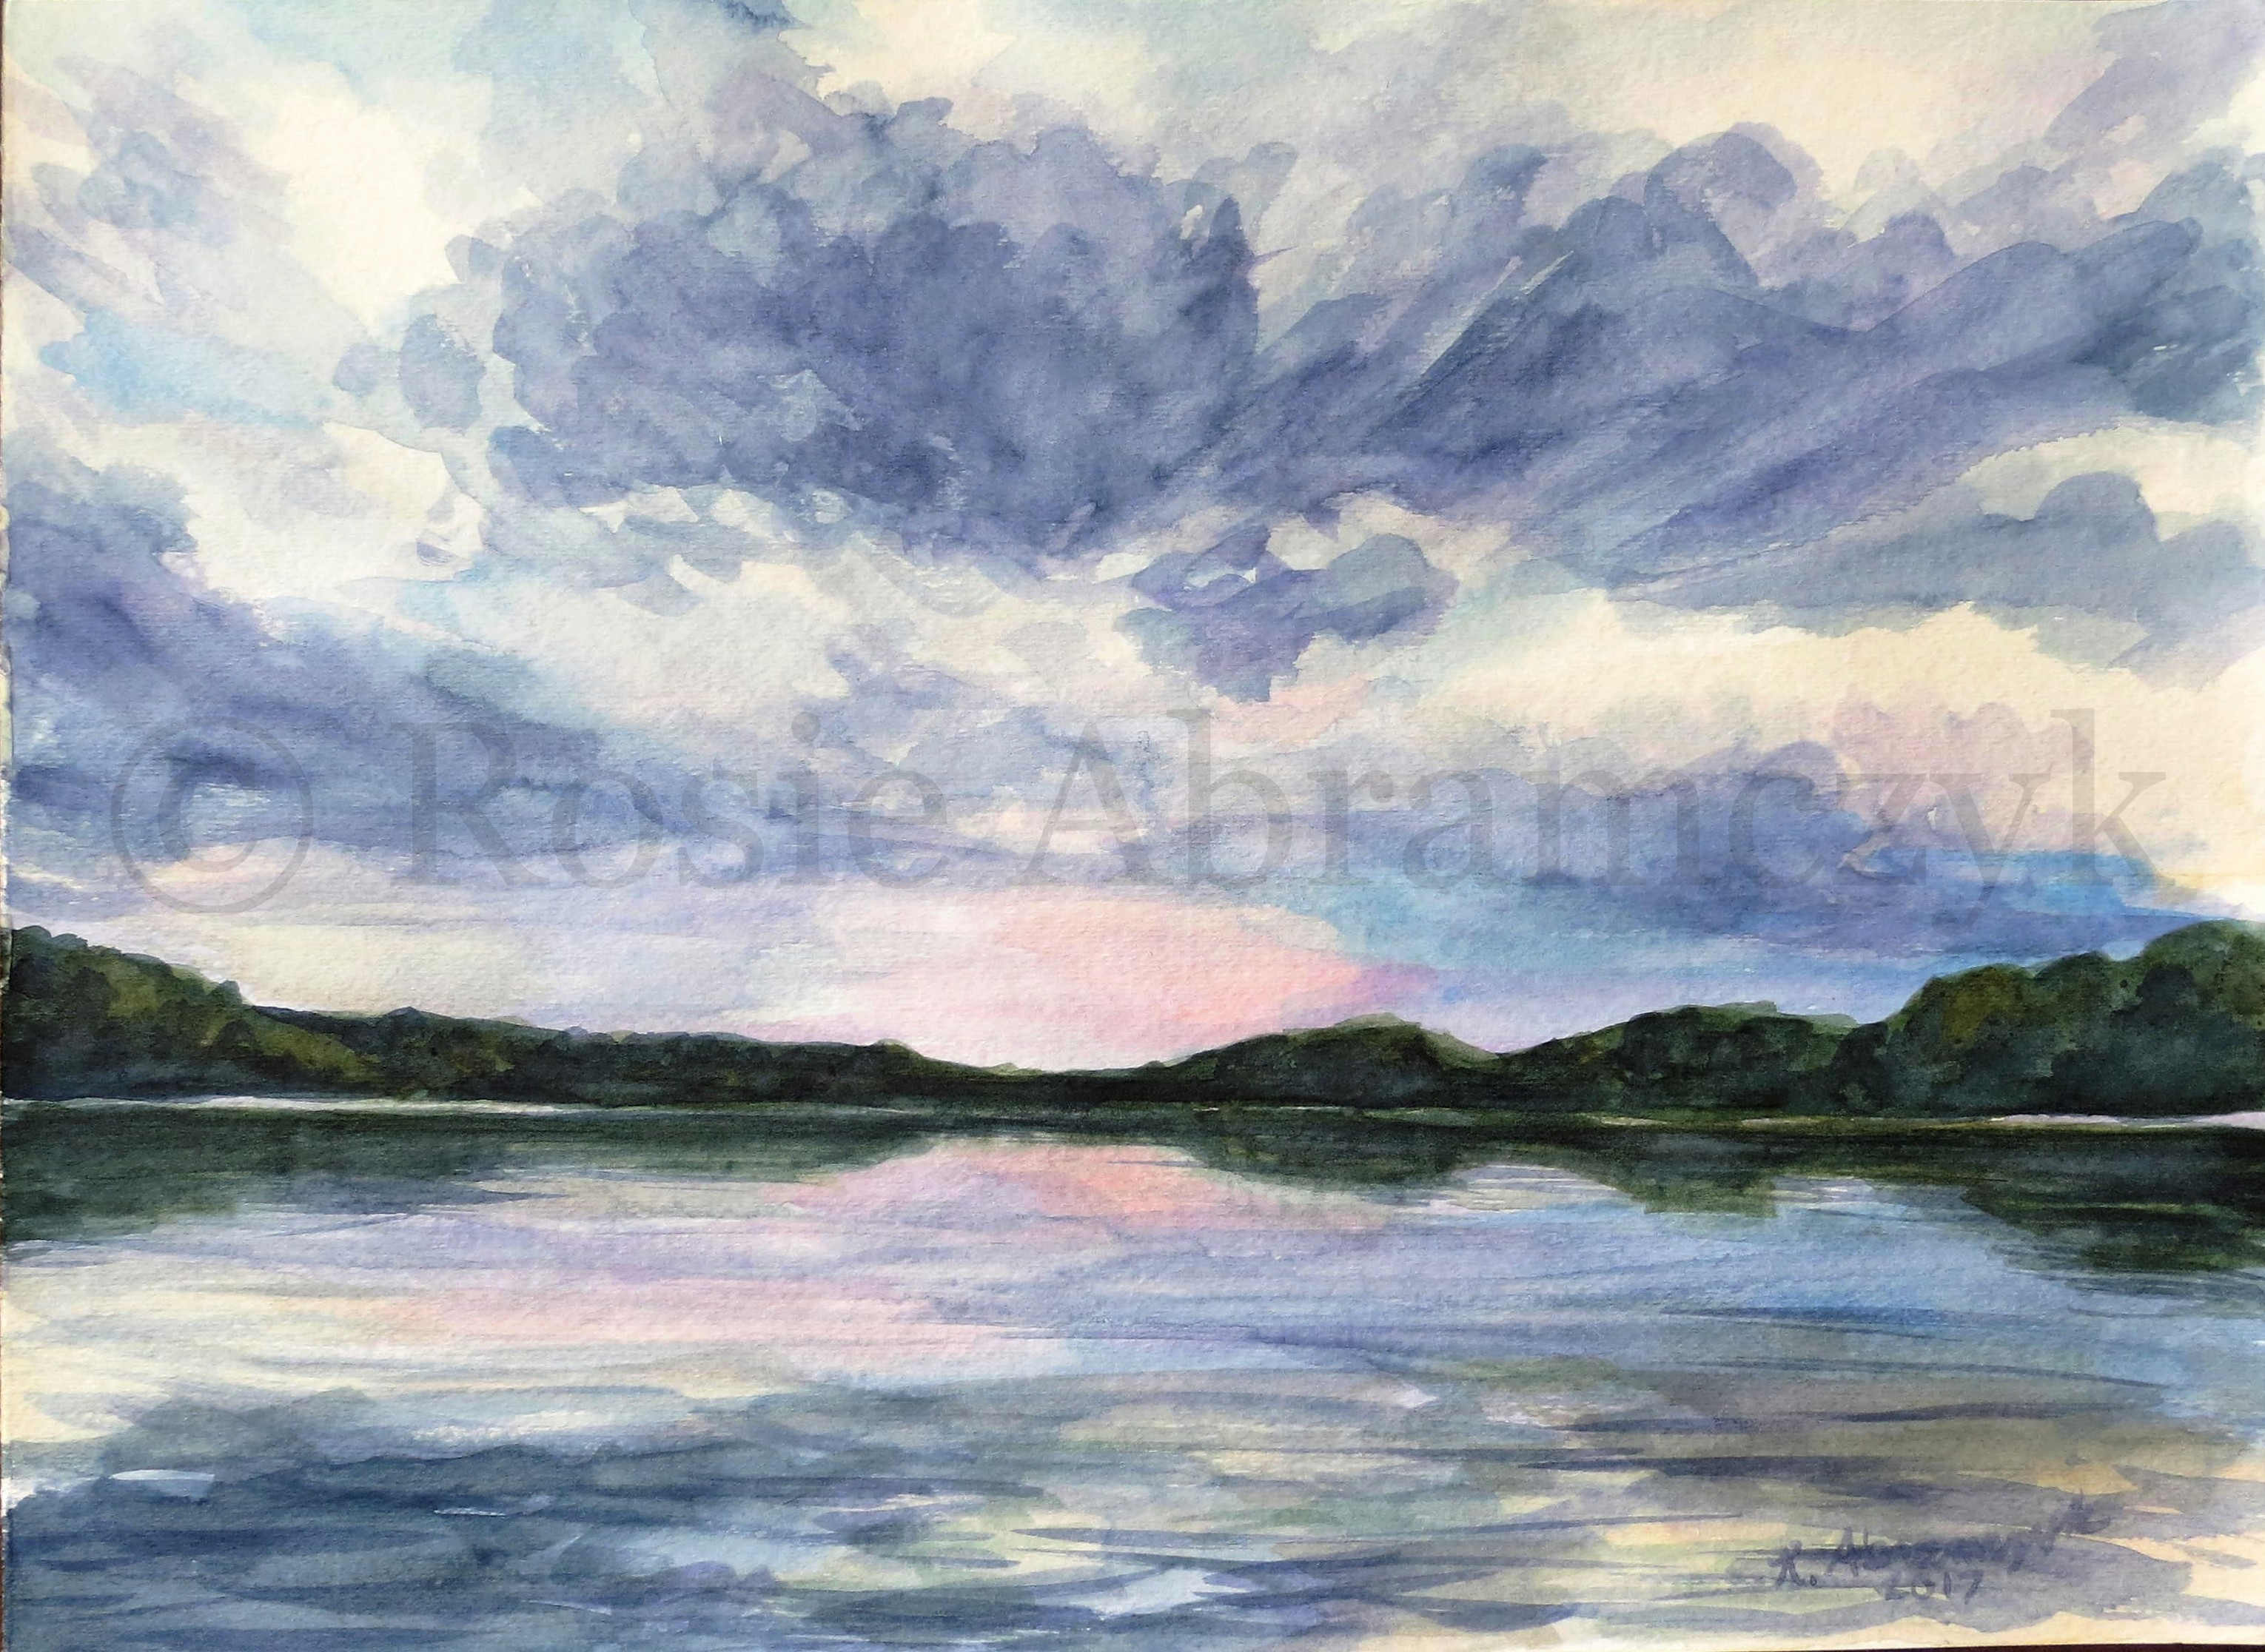 Lake of the Ozarks, Camdenton, MO, by Rosie Abramczyk, Watercolor, 2017